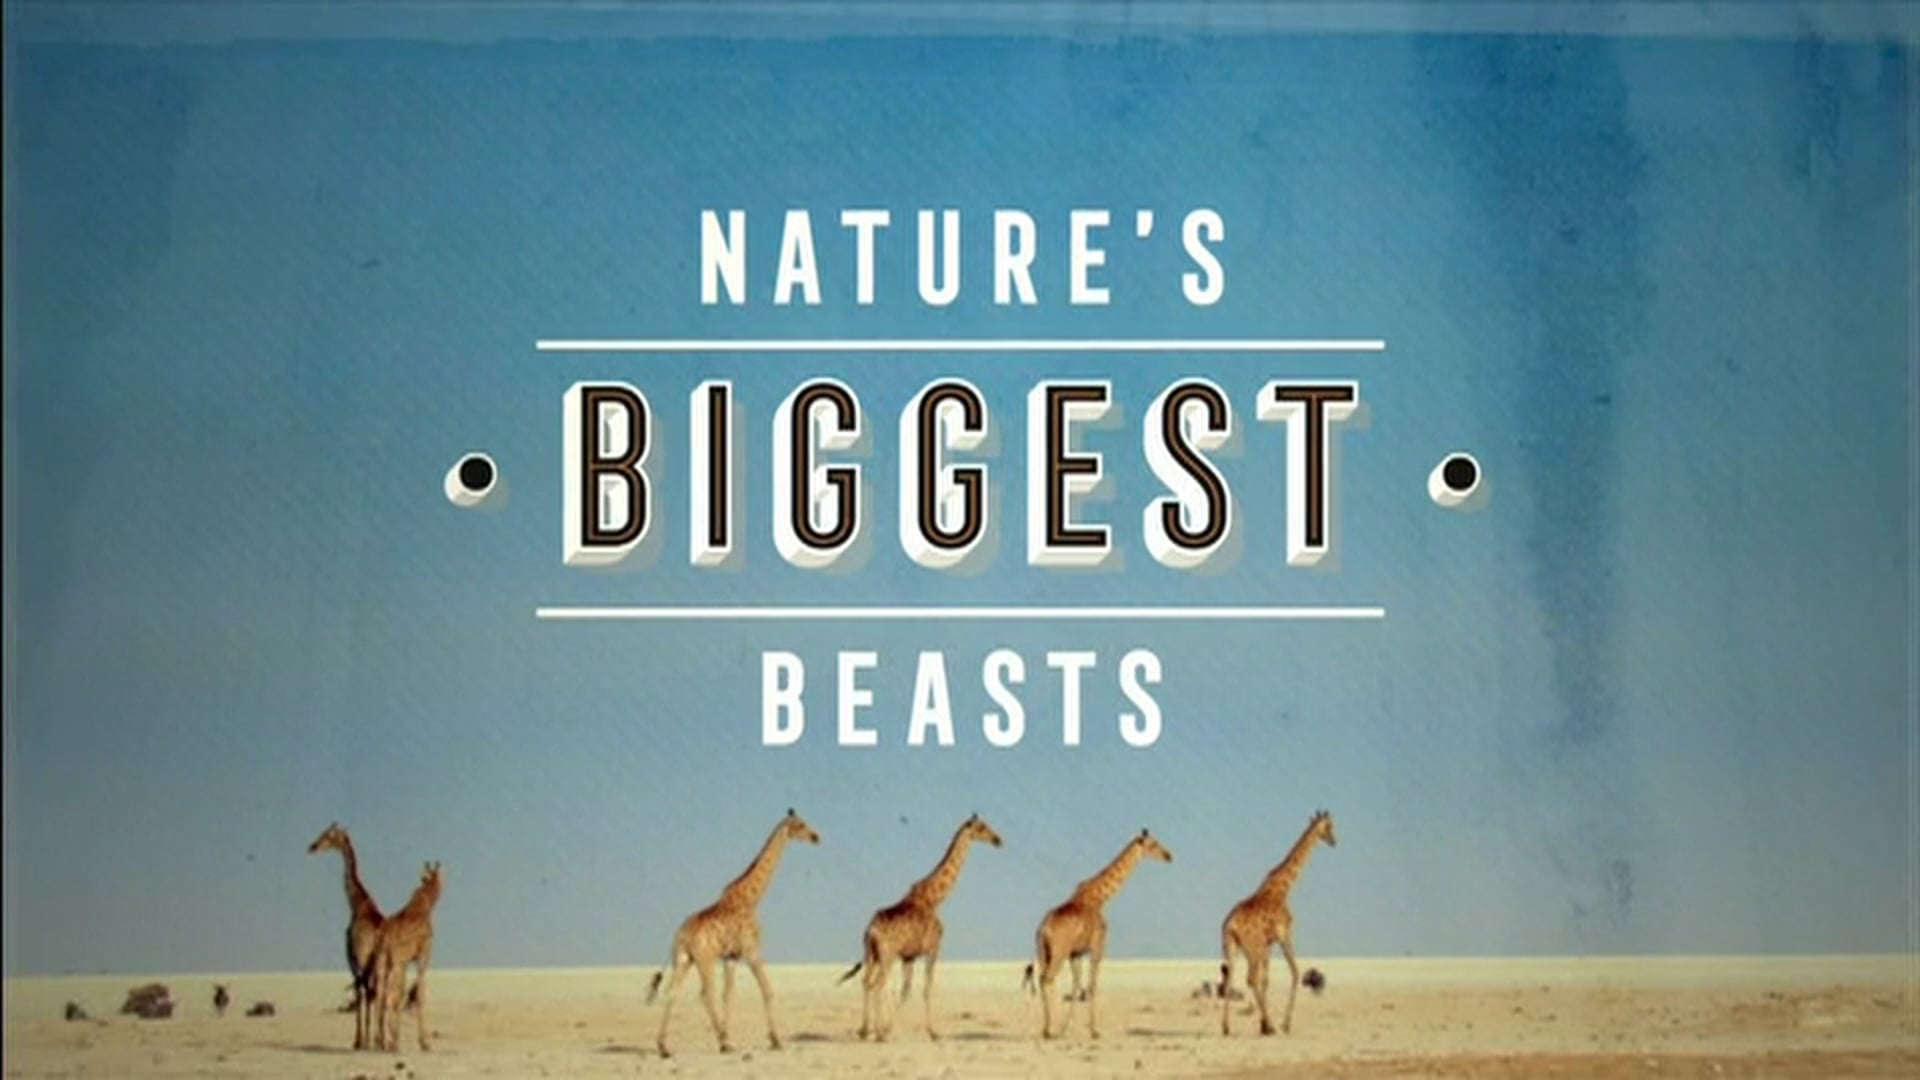 Natural World: Nature's Biggest Beasts. Pre and Post Title